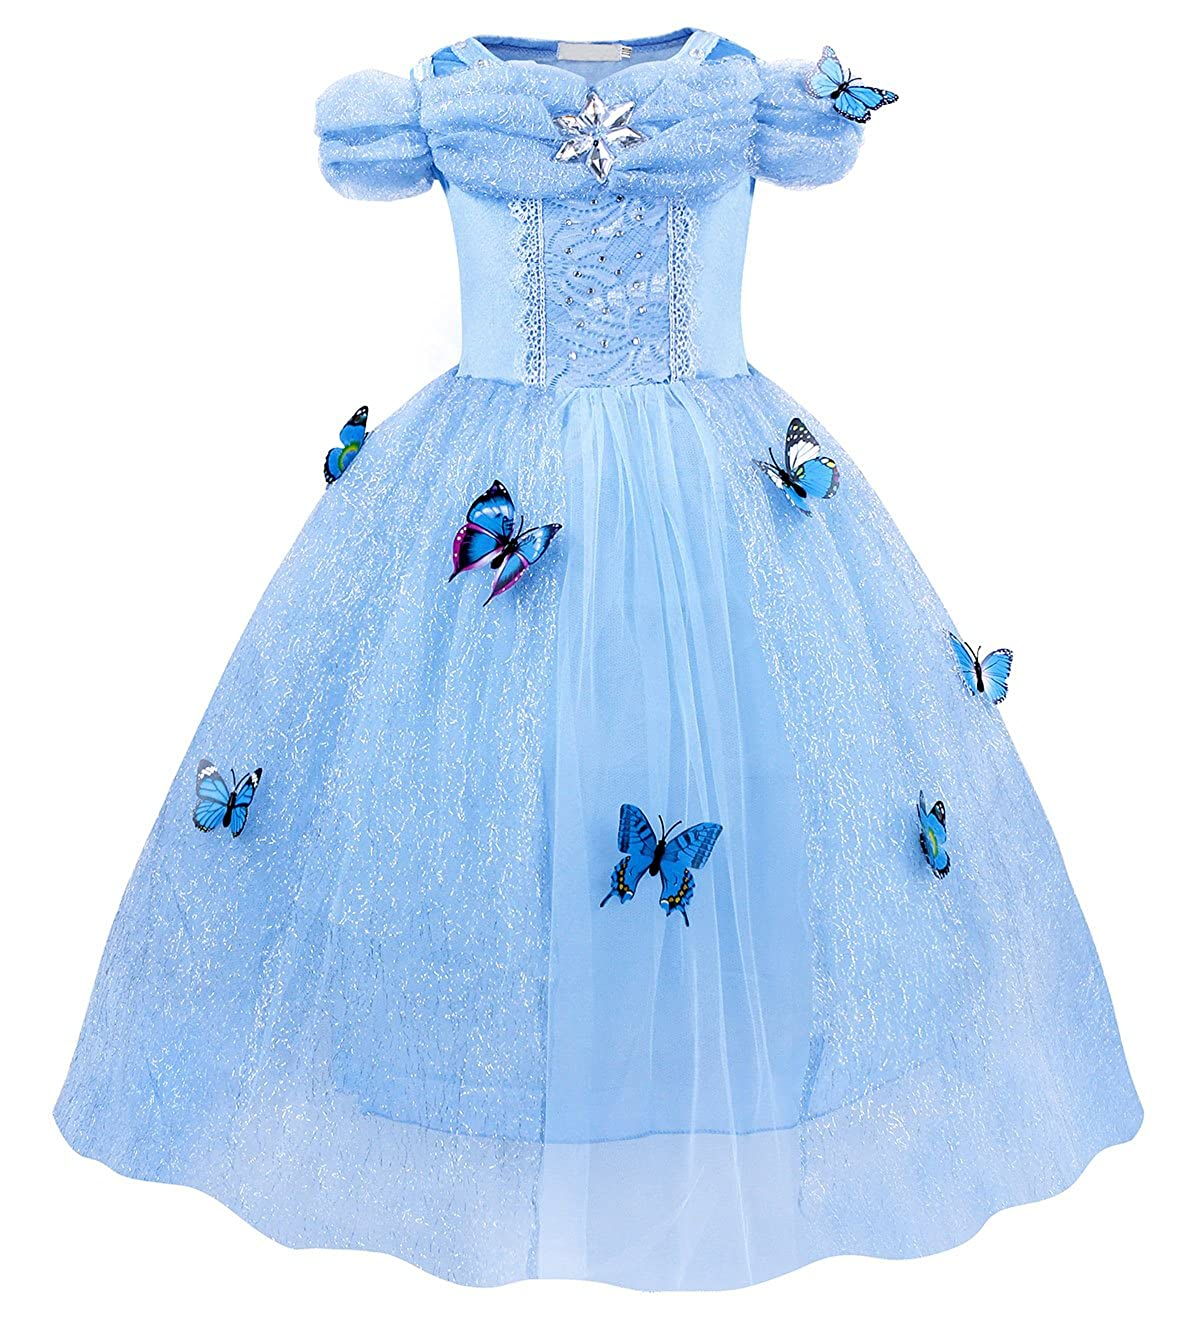 AmzBarley Cinderella Dress Girls Costume Butterfly Birthday Party Princess Cosplay G014-100-CA